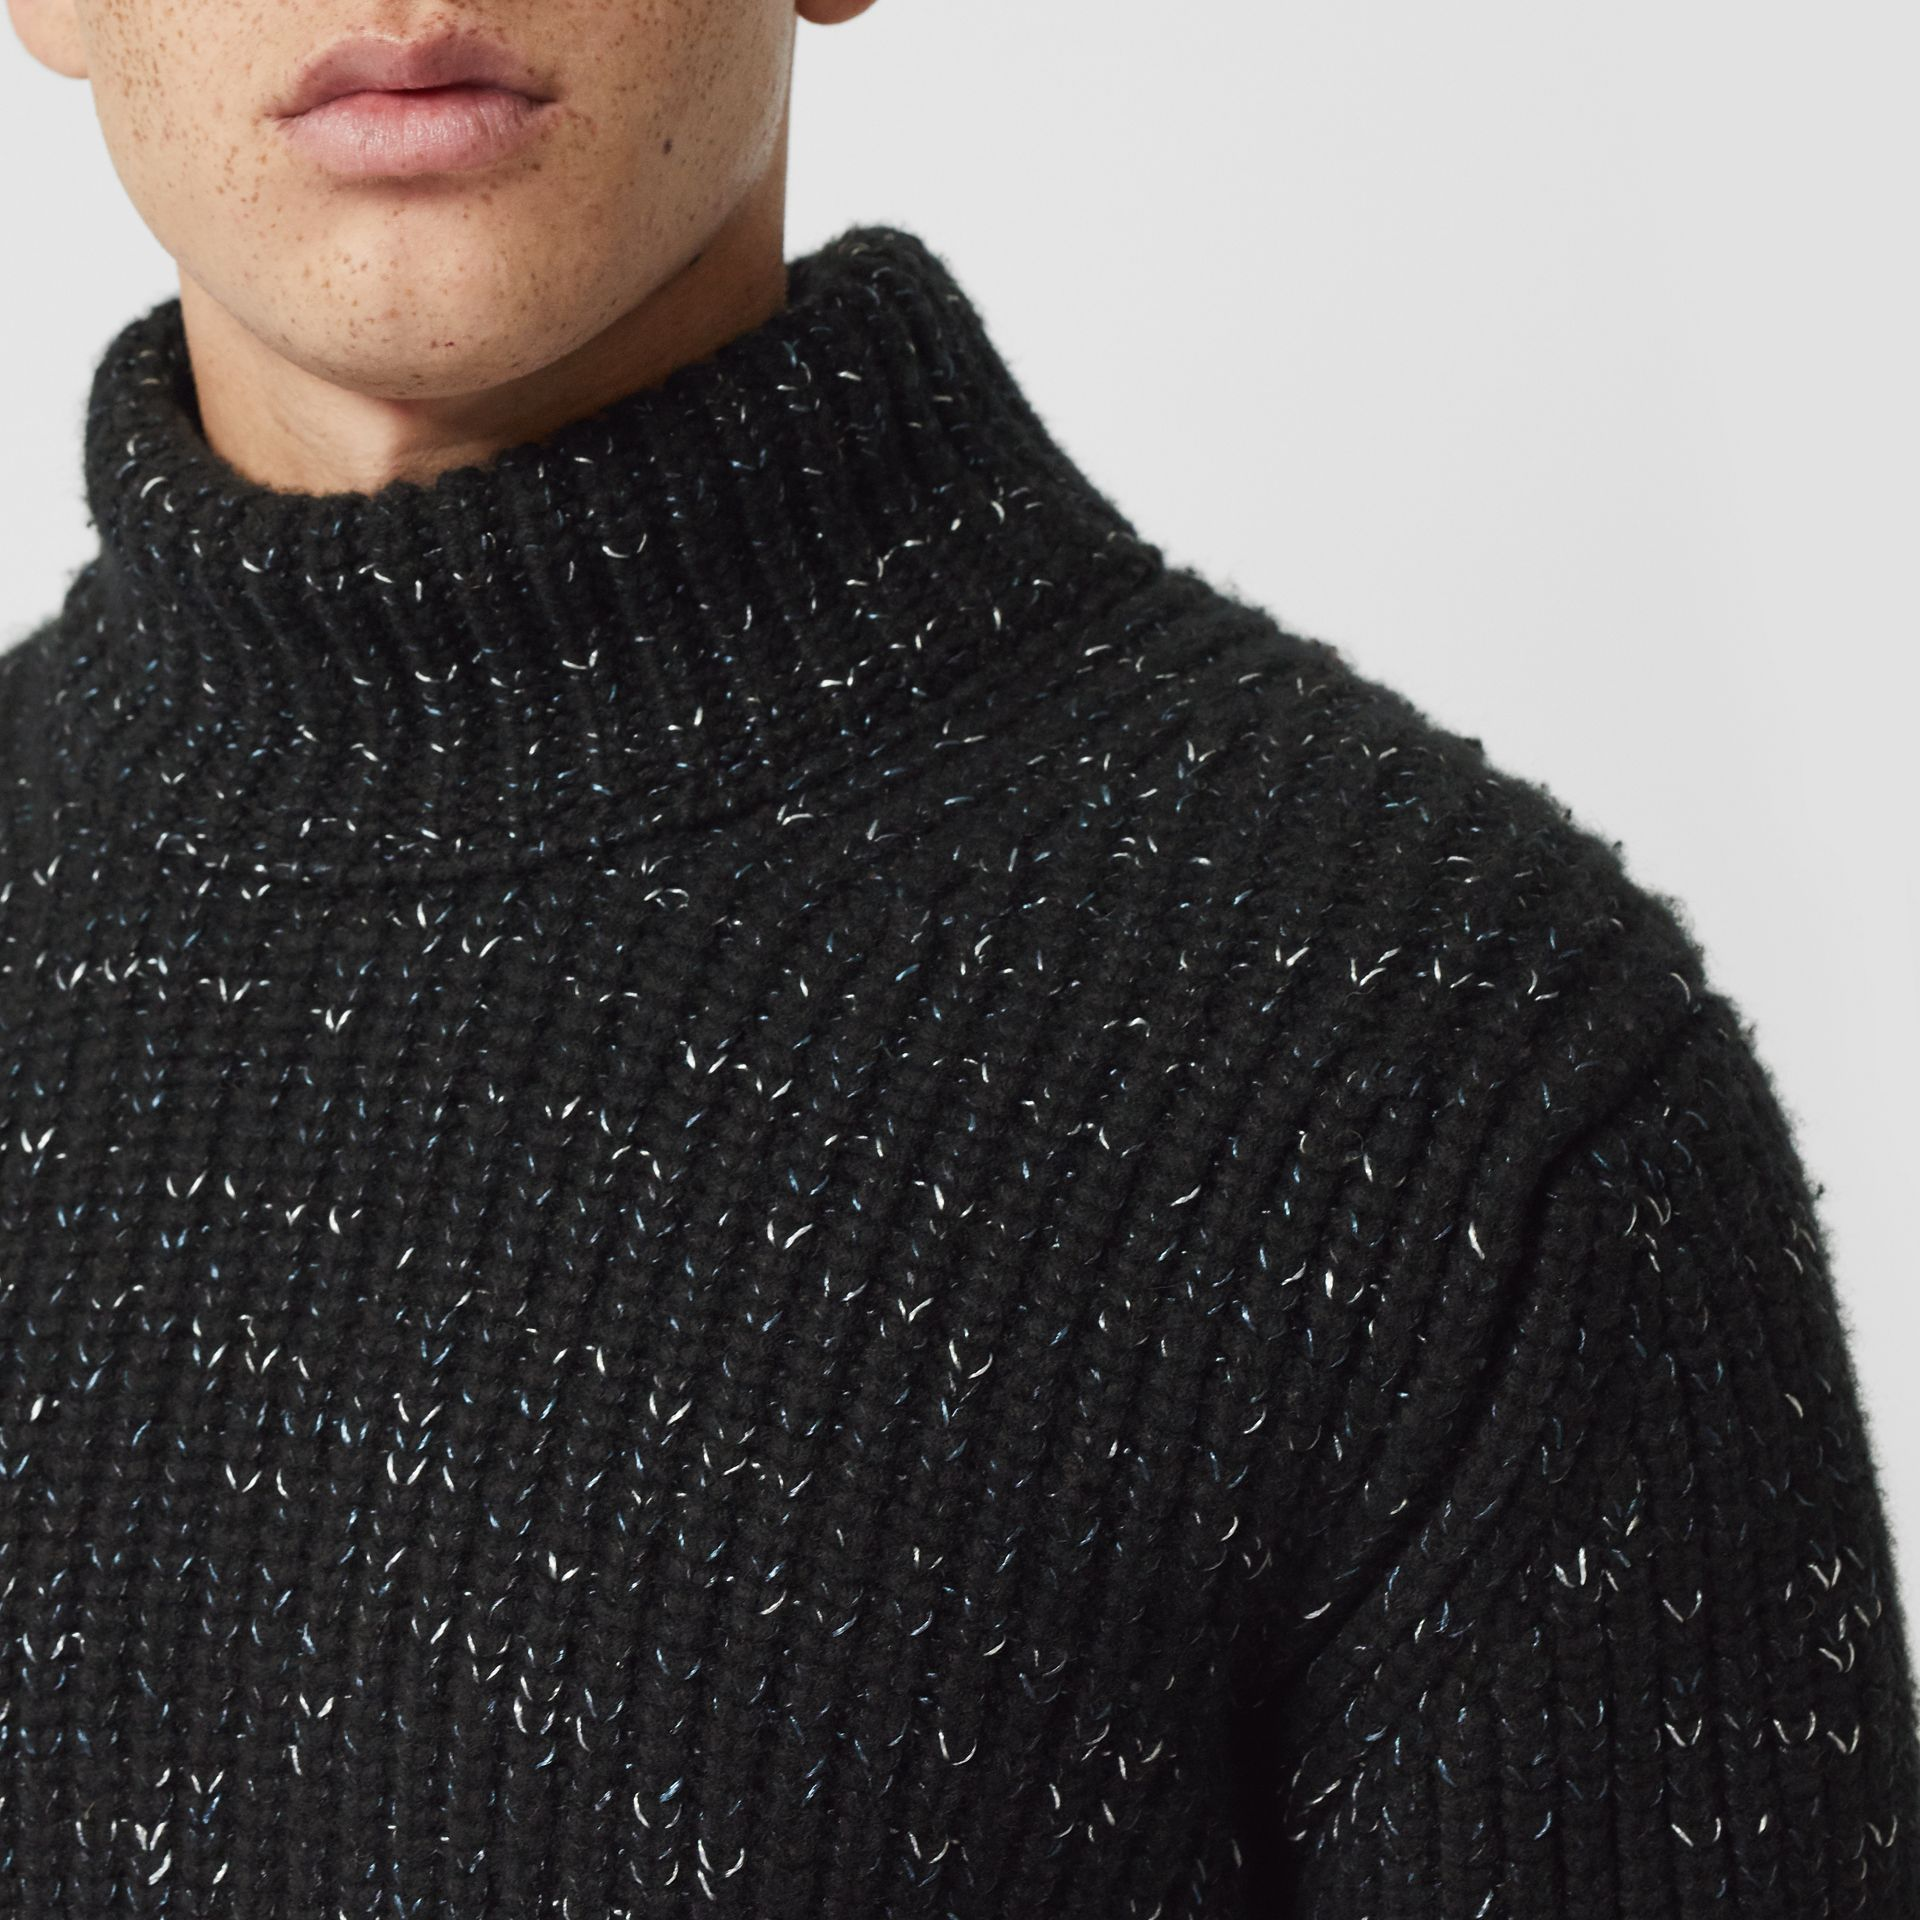 Contrast Knit Wool Cashmere Blend Sweater in Black - Men | Burberry United States - gallery image 1